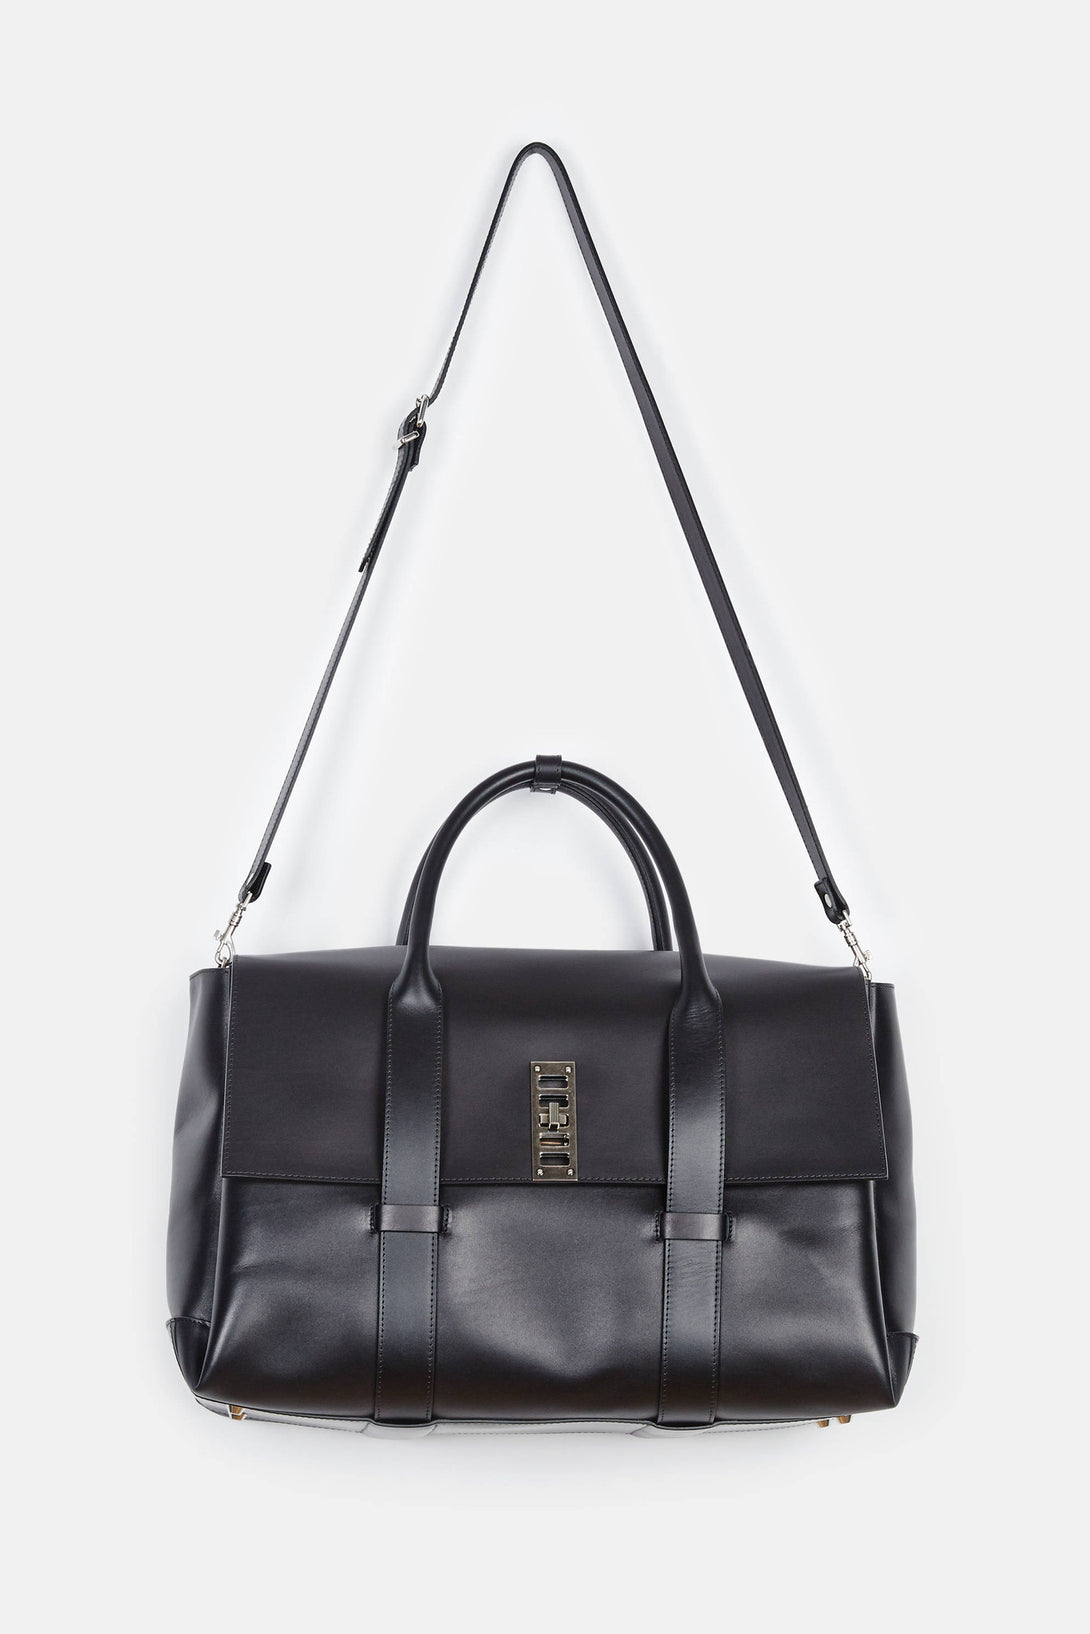 PS Elliot Large Satchel - Black